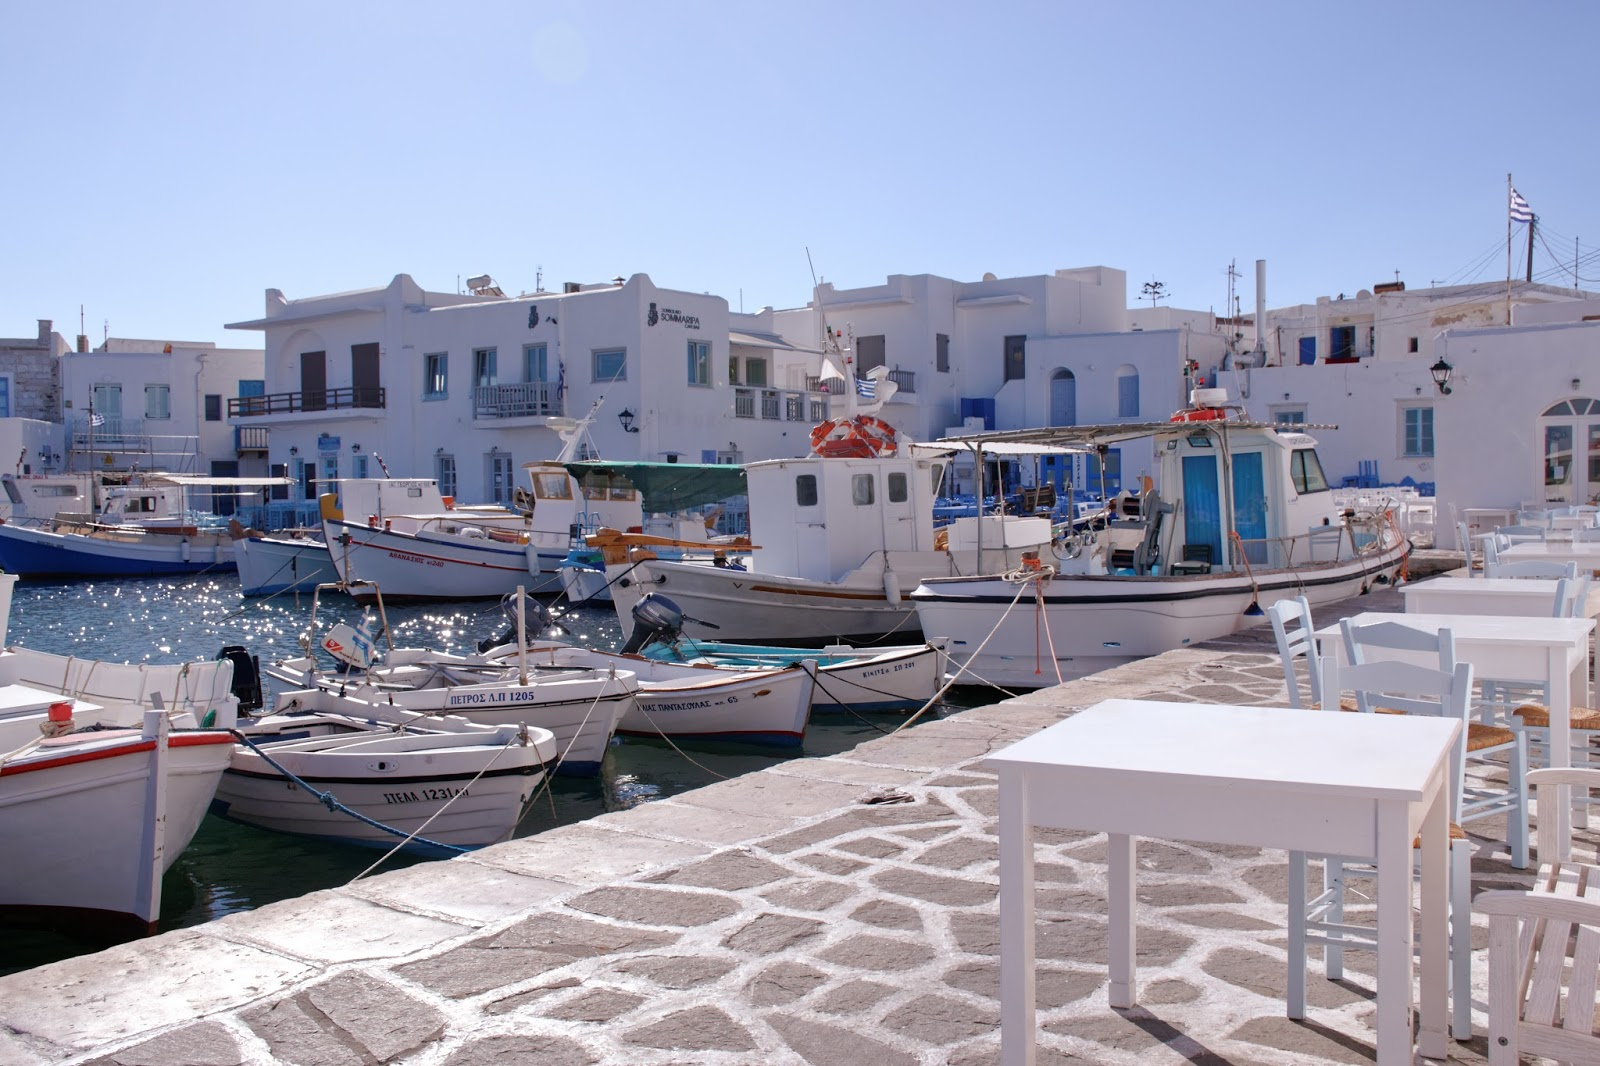 https://www.notebook.ldmailys.com/2017/11/paros.html